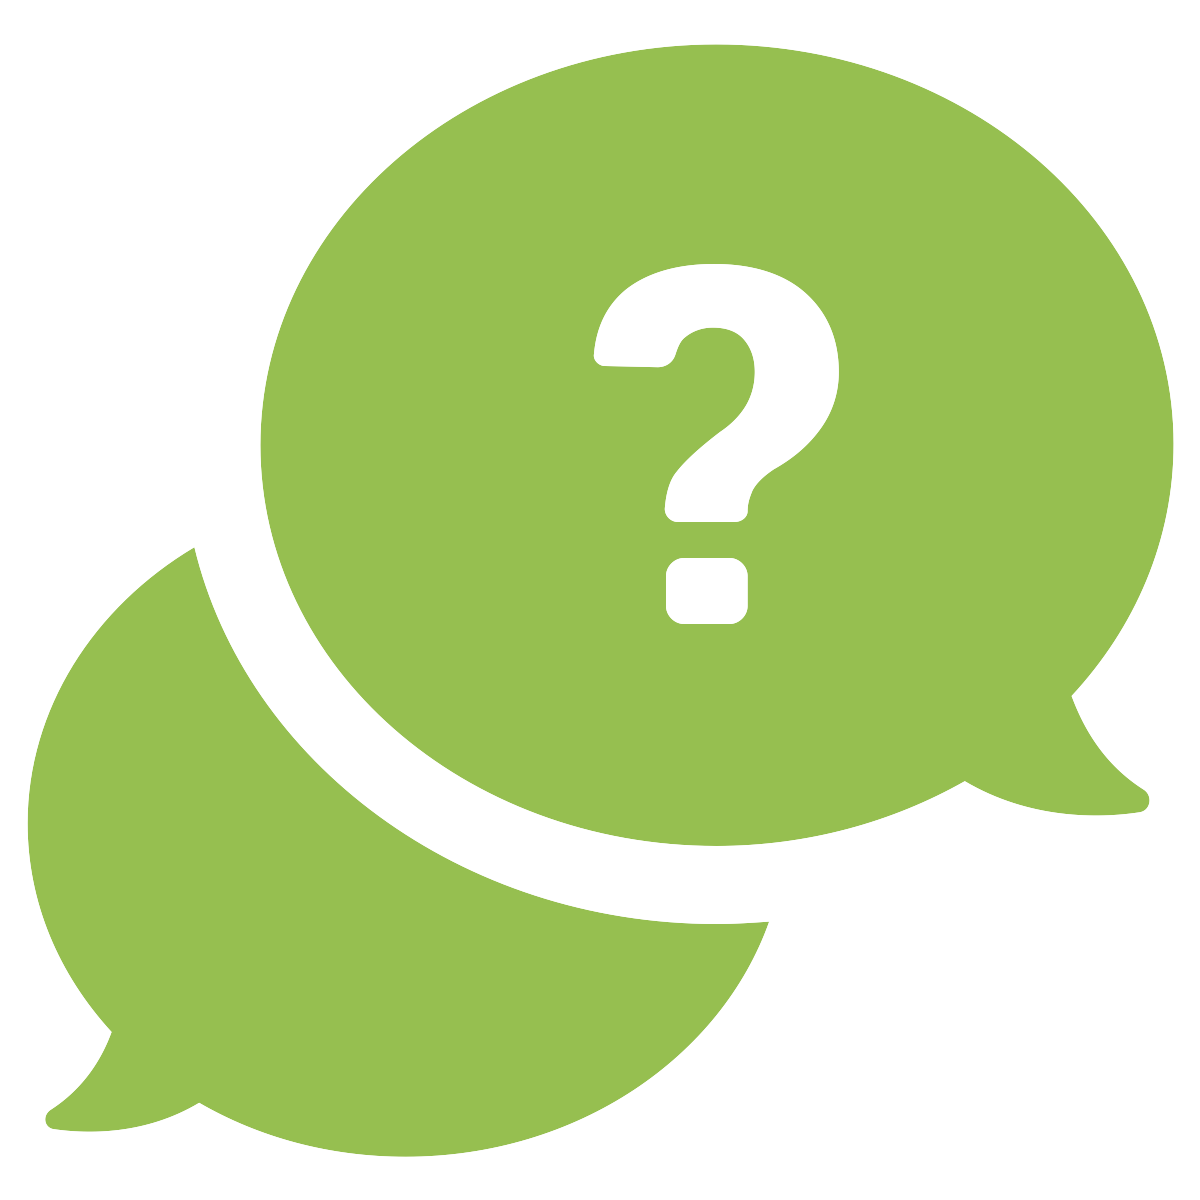 Icon of two speech bubbles with a question mark